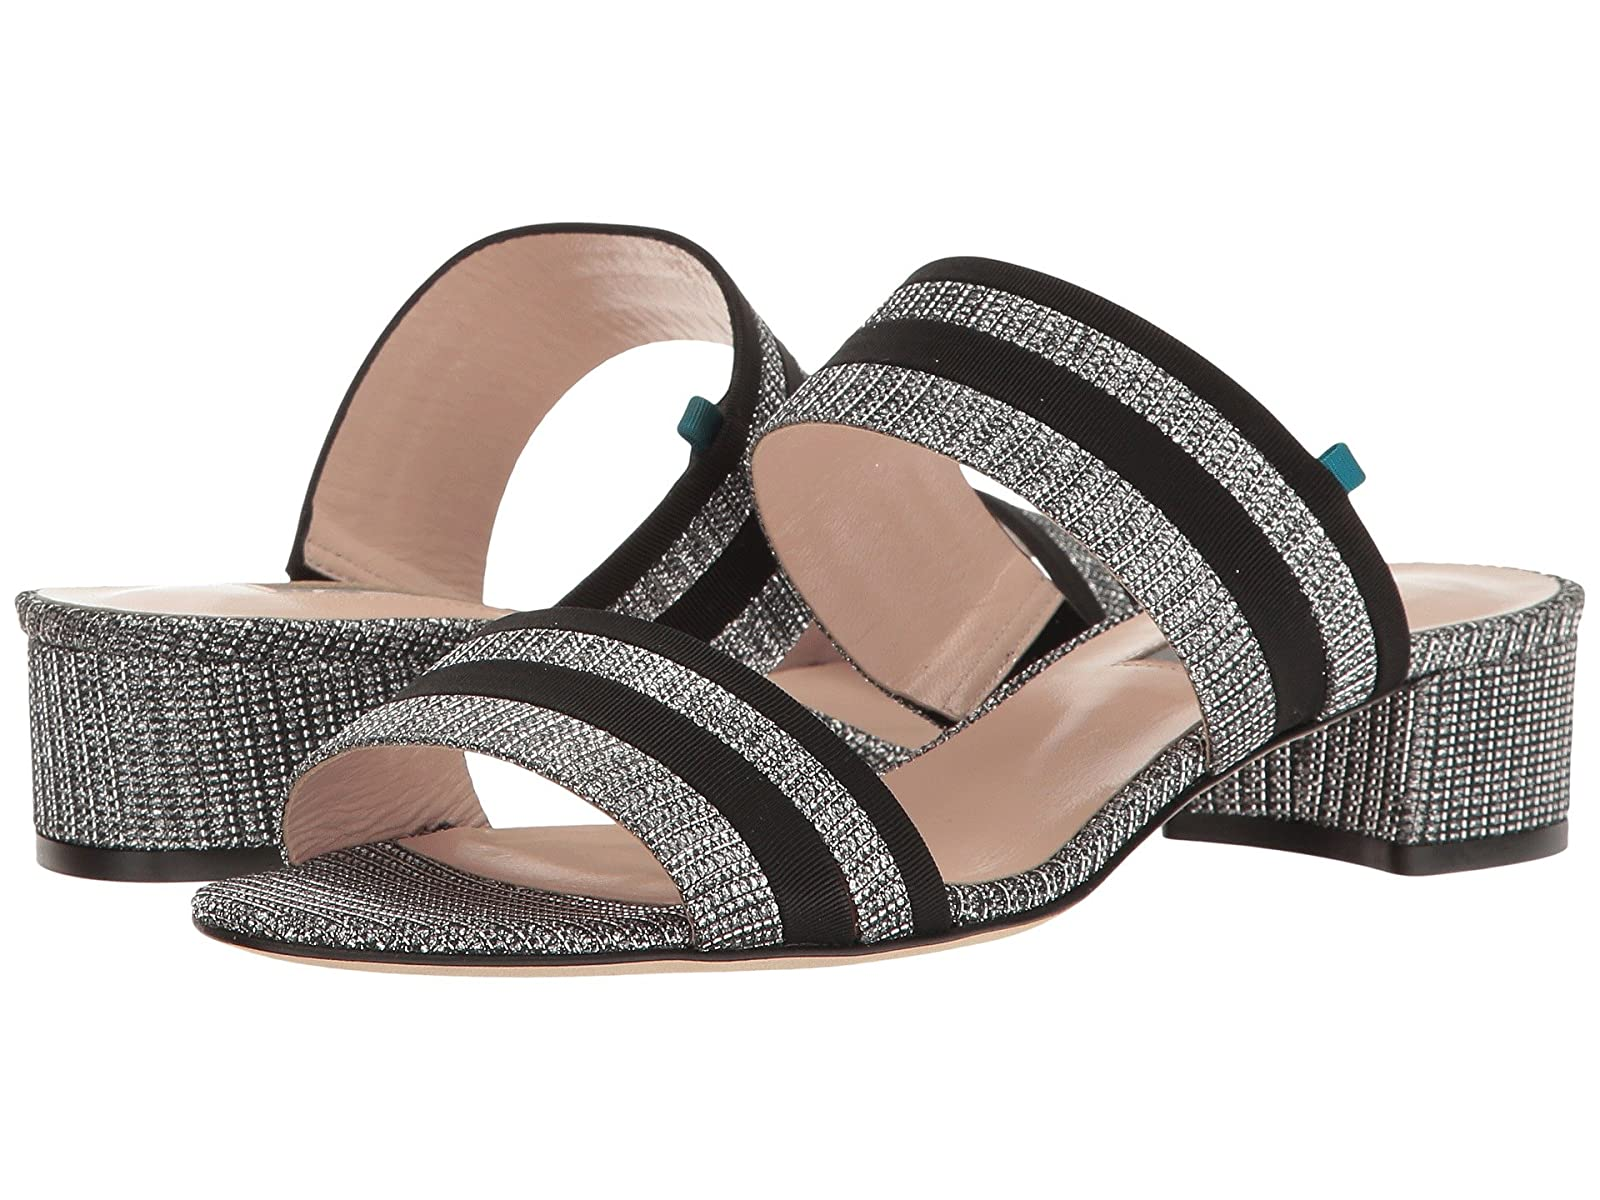 SJP by Sarah Jessica Parker BloomCheap and distinctive eye-catching shoes